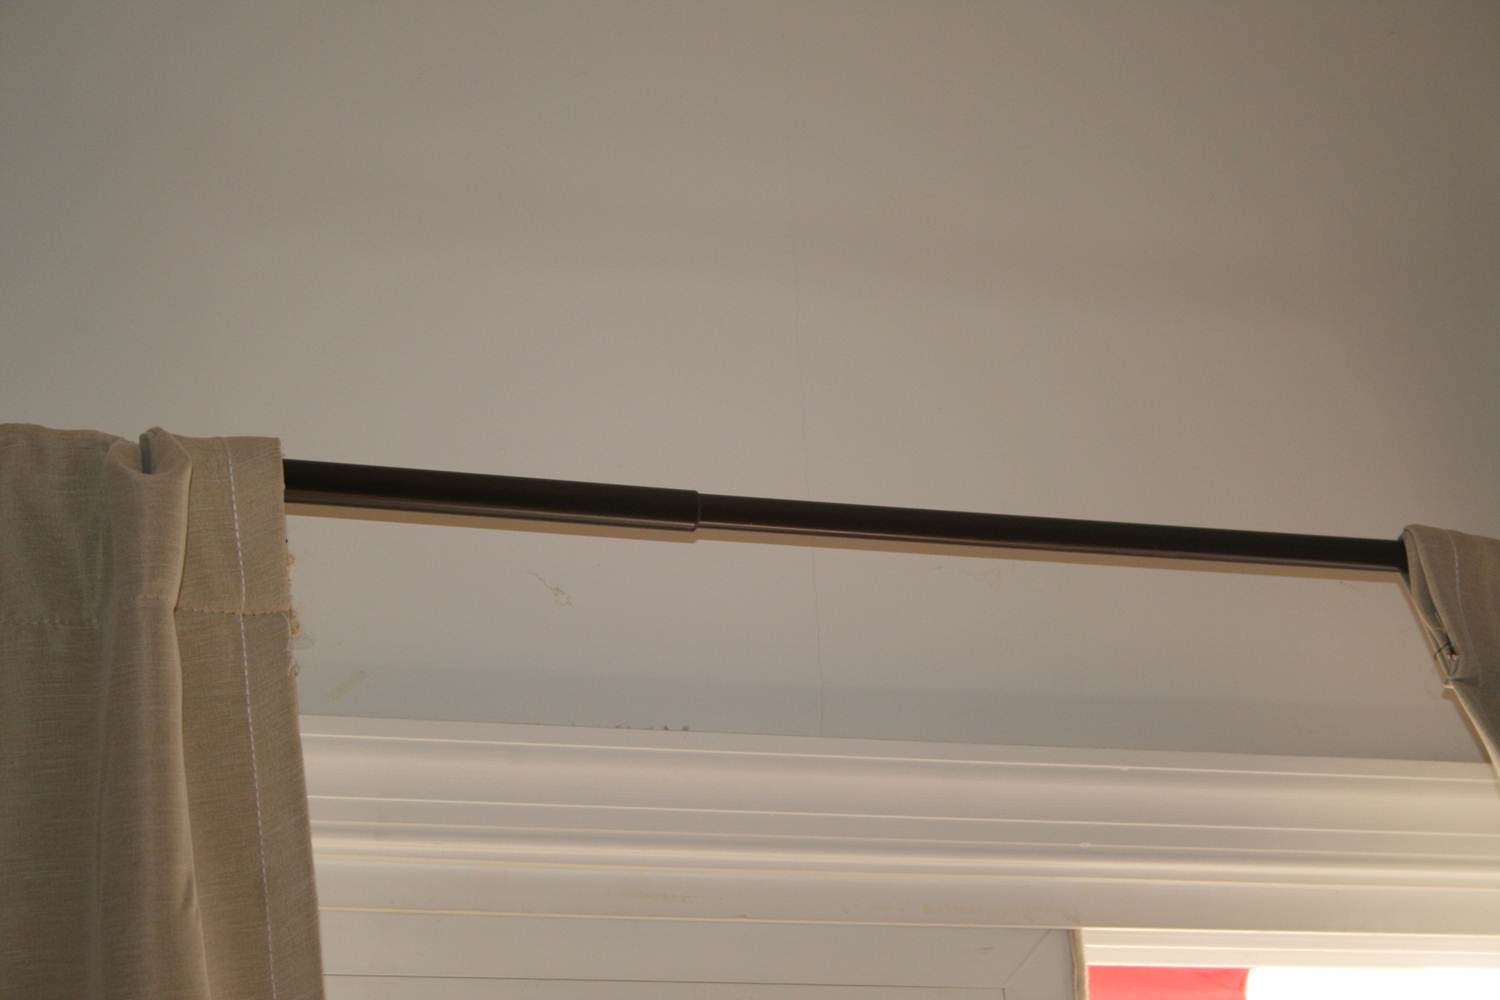 Wall crack above sliding glass doors-picture2.jpg